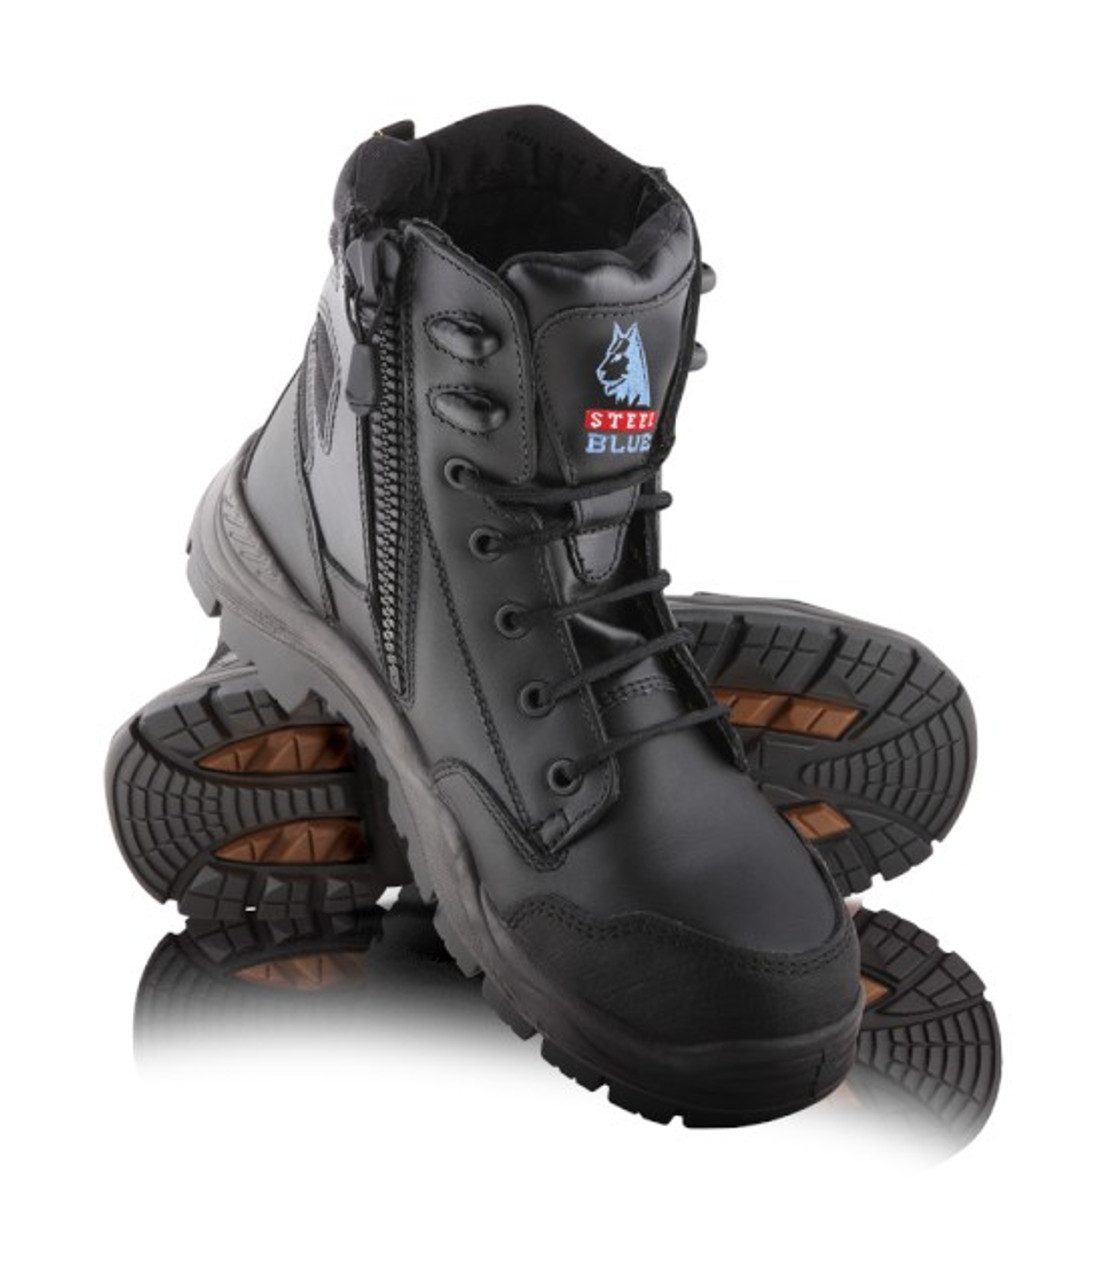 464a4ce309e Steel Blue - Torquay Lace-Up Boot with Airport Friendly Toe Cap